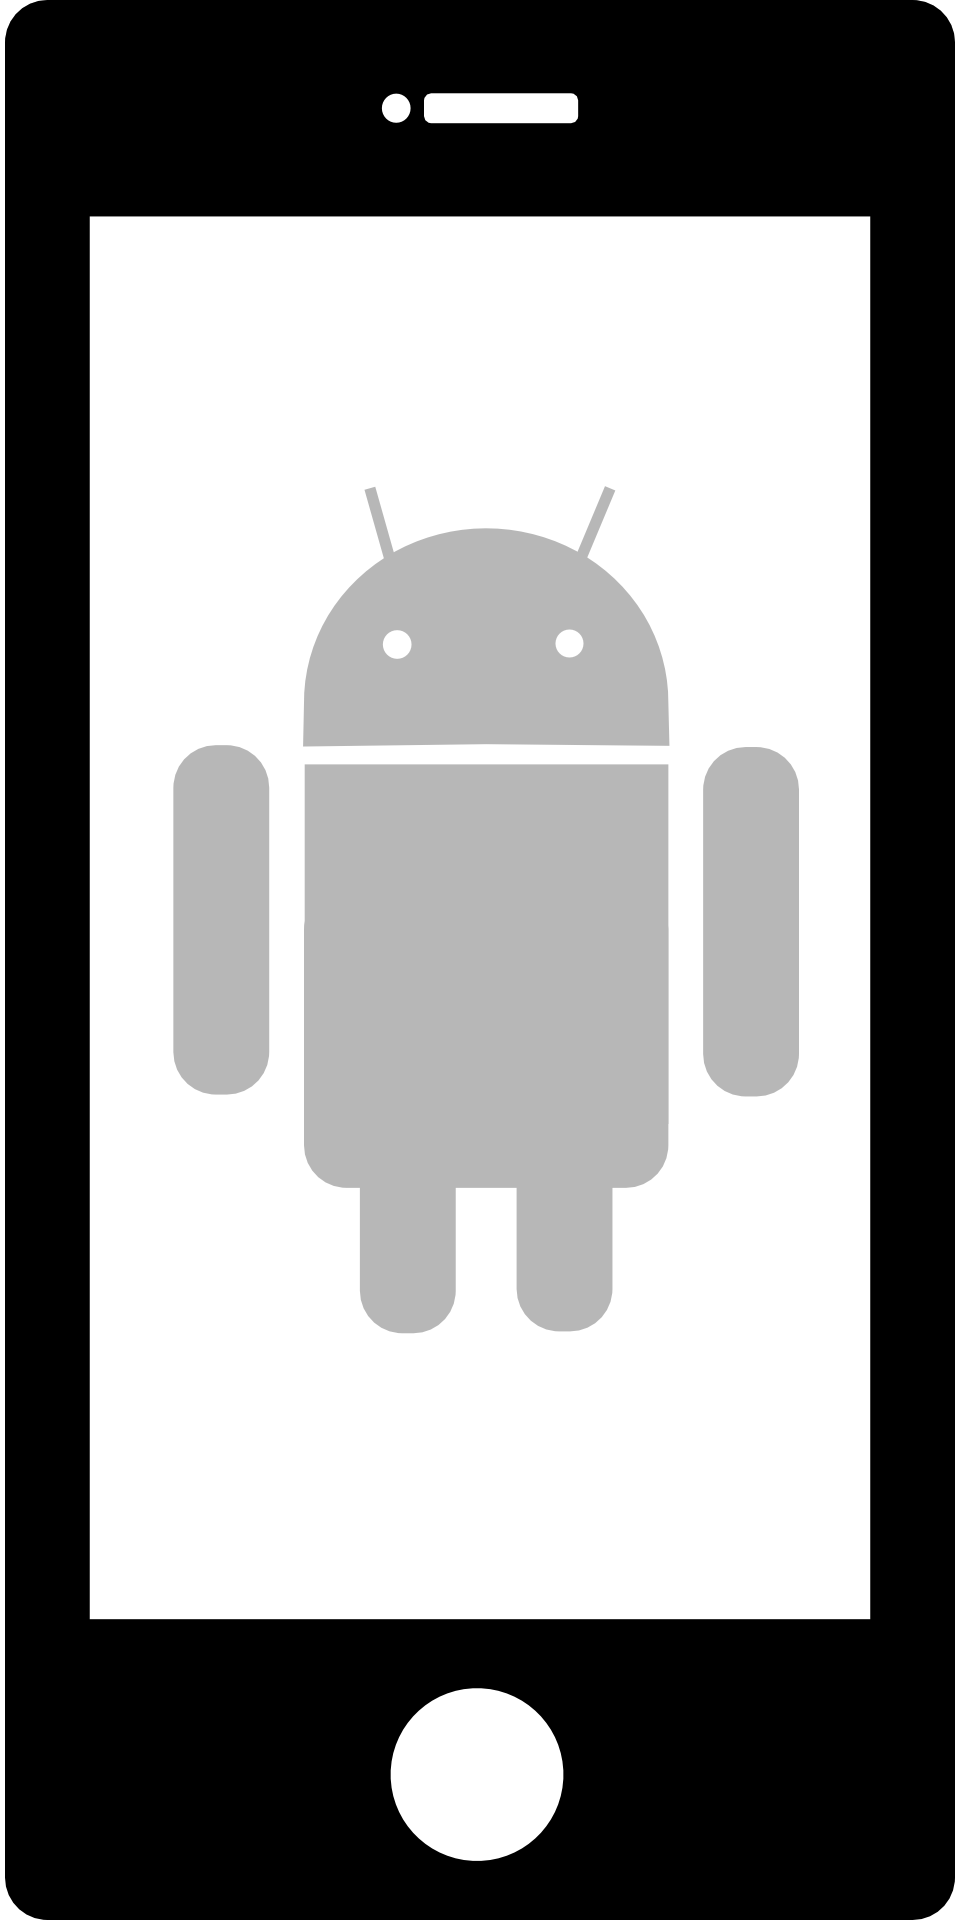 File:Android logo 10.png.